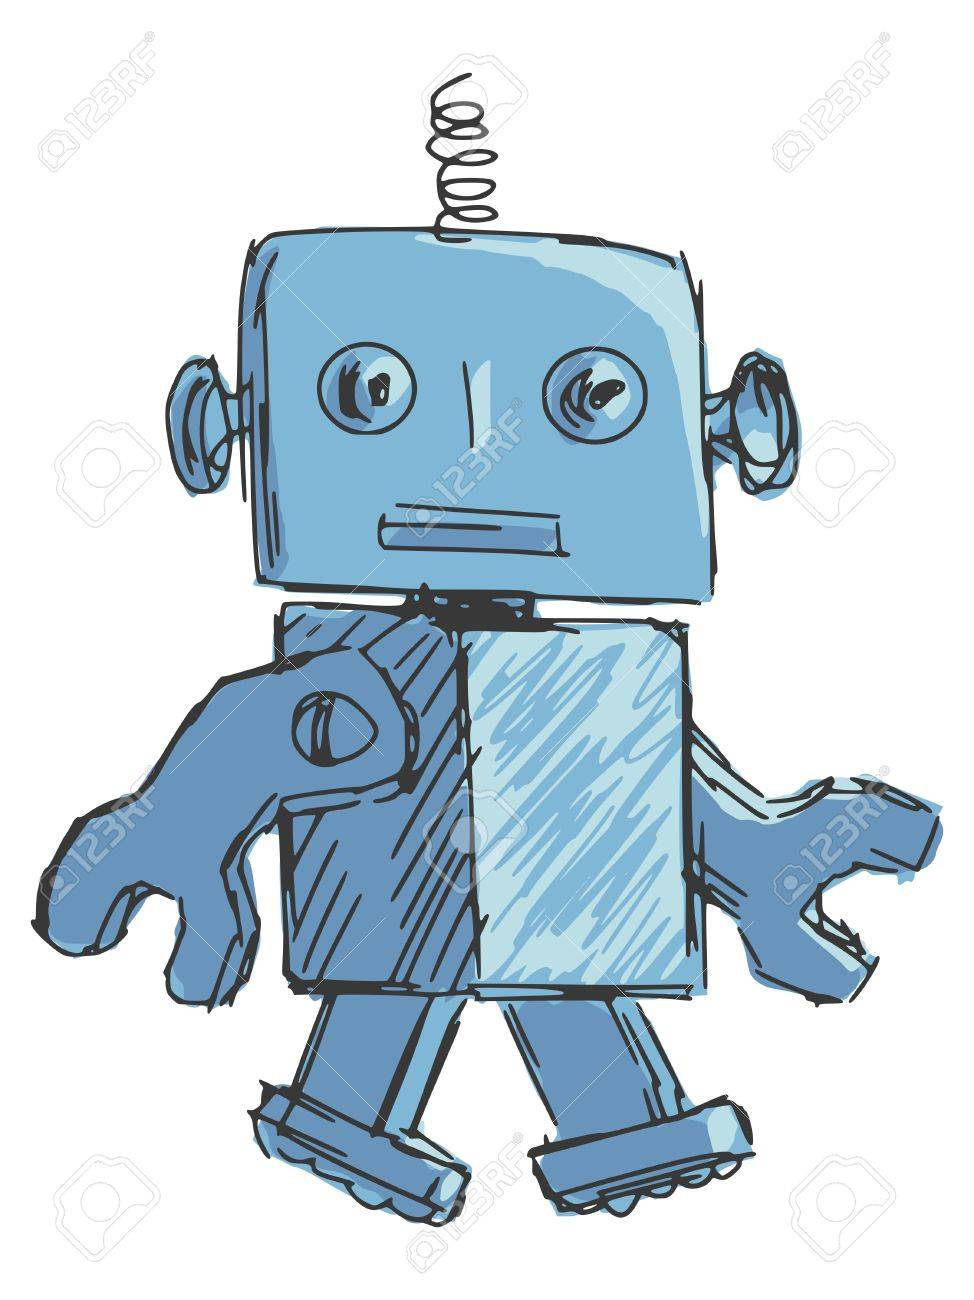 Children Robot Hand Drawn Cartoon Sketch Illustration Of Children Robot